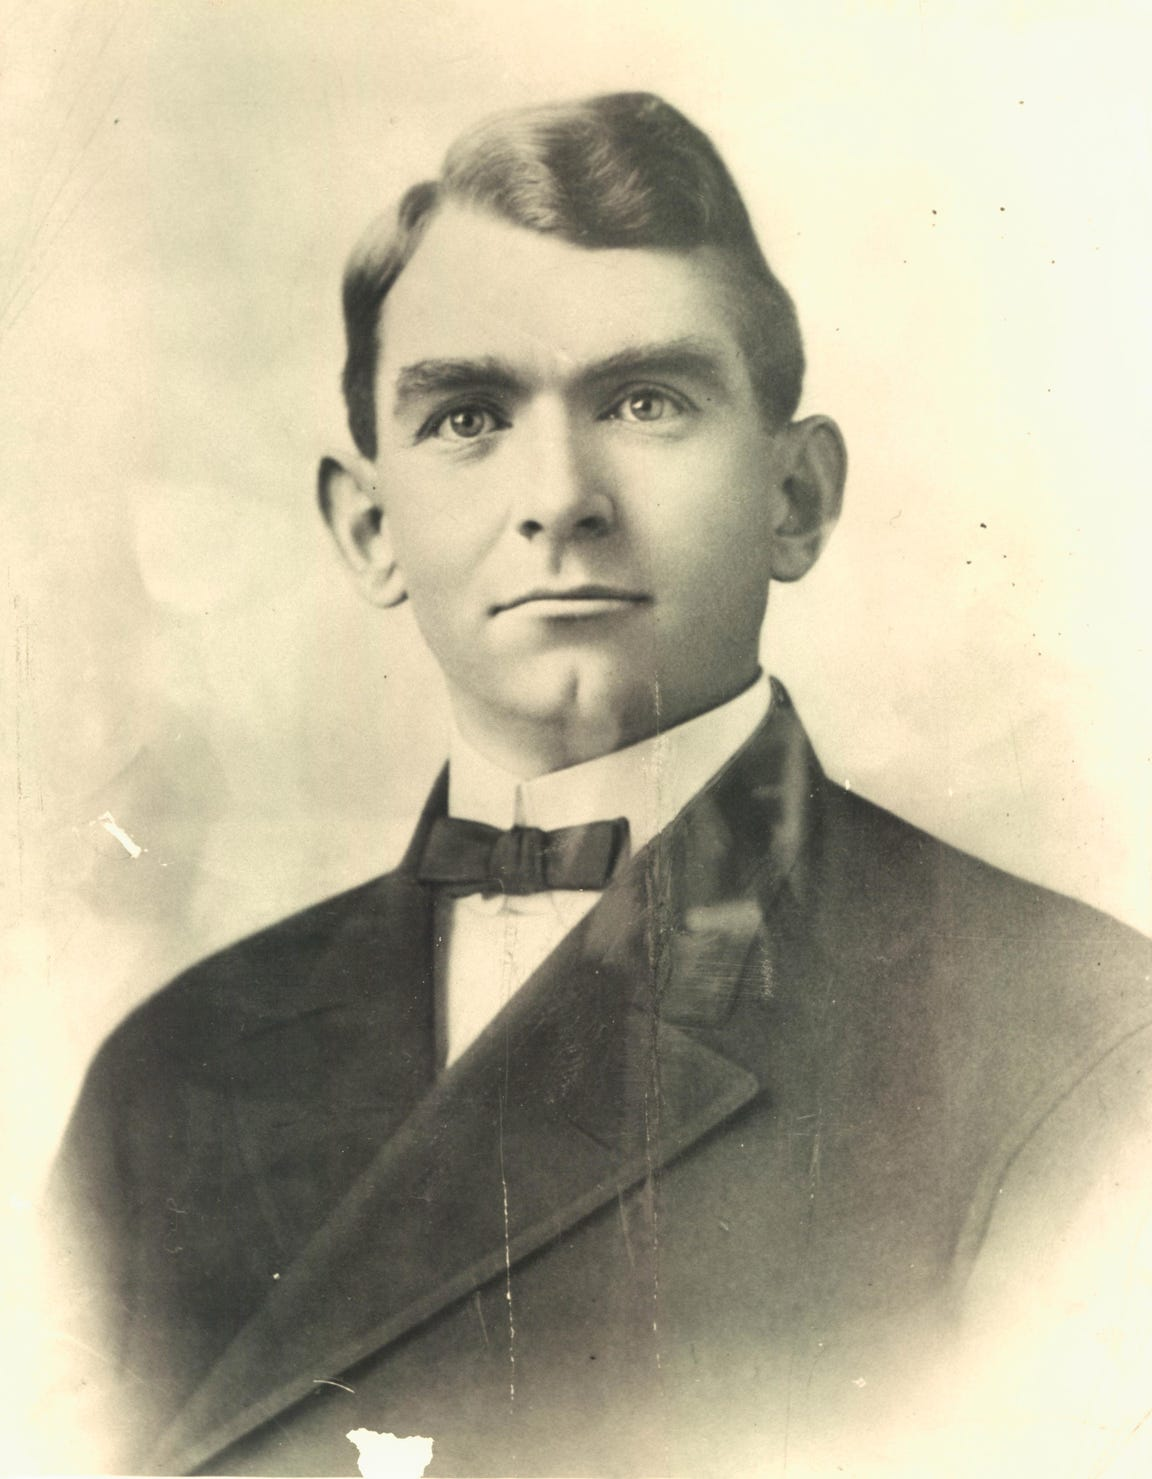 E.H. Crump was elected mayor of Memphis in 1909.